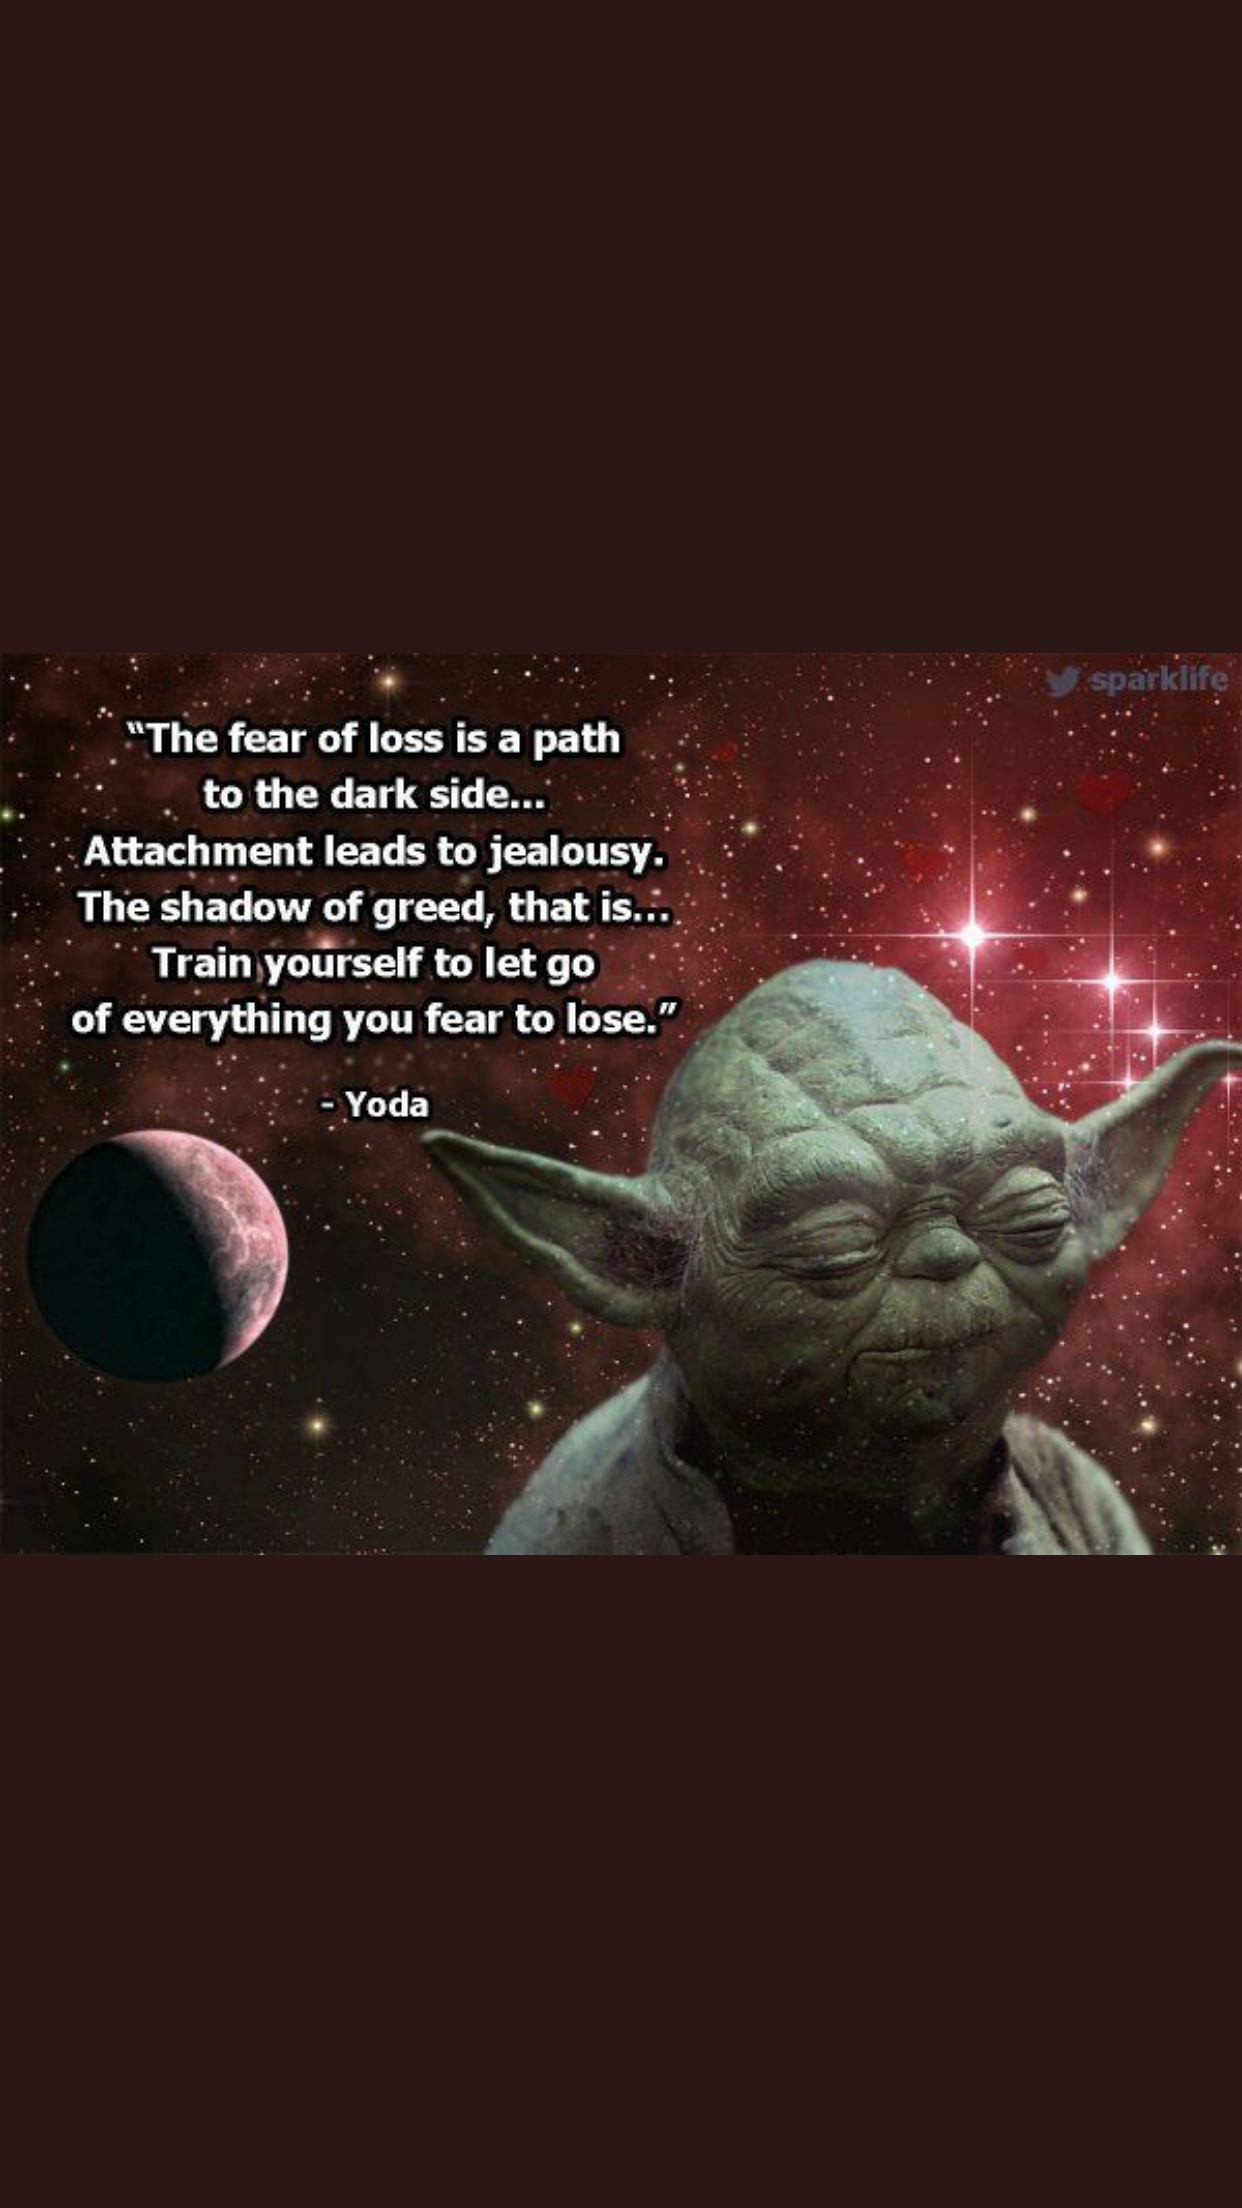 Pin By Soleila On Jedi Proverbs Pinterest Star Wars Quotes And